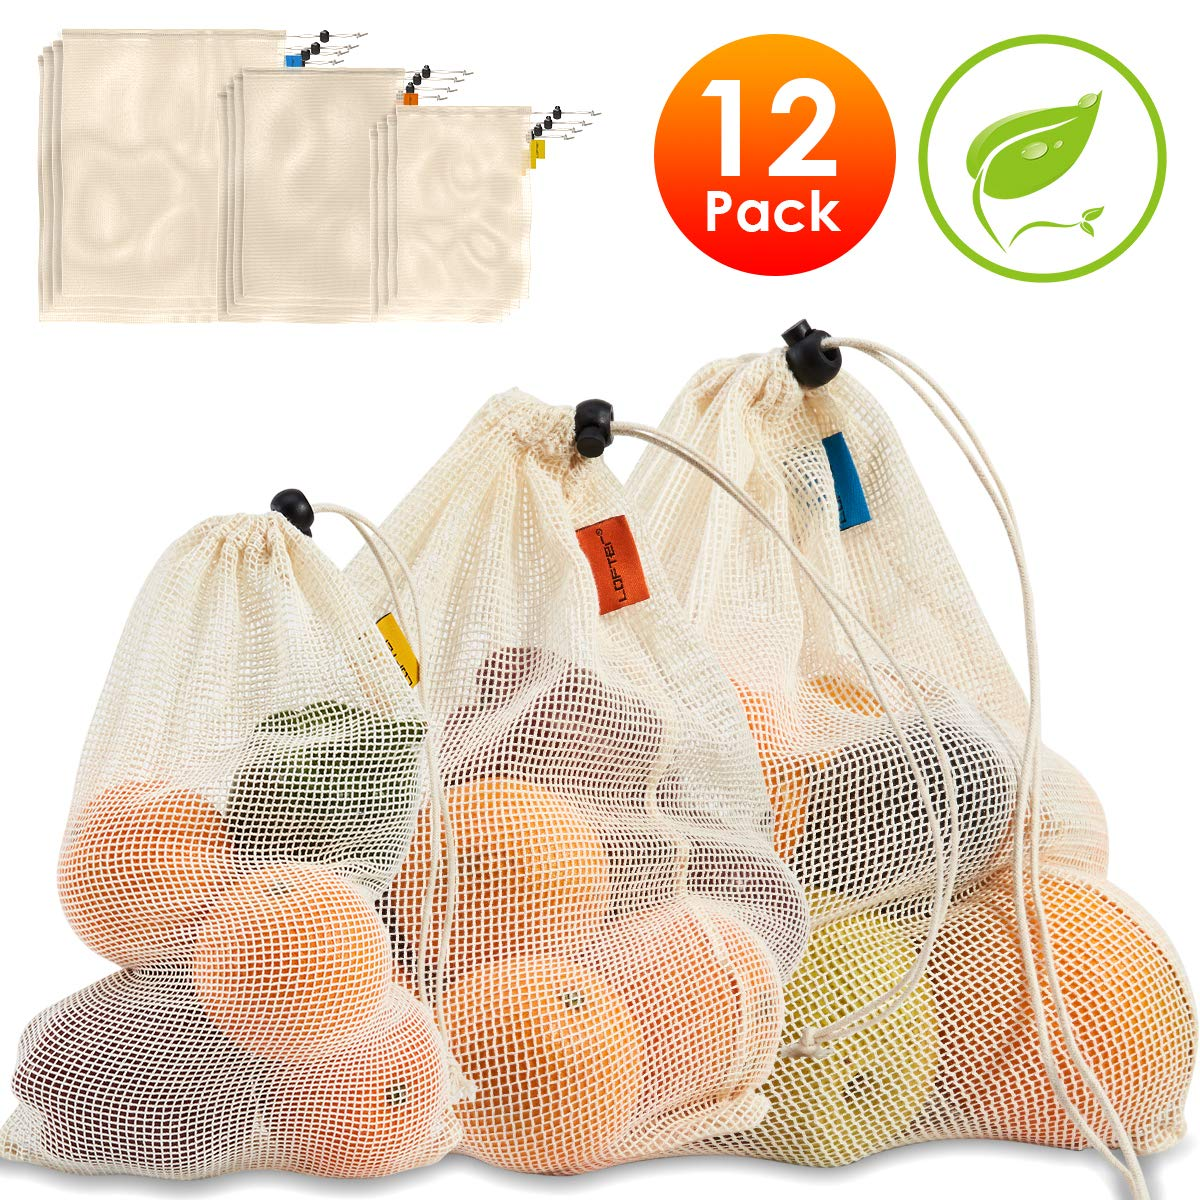 Reusable Produce Bags, LOFTER Cotton Mesh Bags with Tare Weight Tags, Organic Grocery Bags for Shopping & Storage, Washable, Biodegradable, Eco-friendly, Superior Double-Stitched Strength, 12 Pack